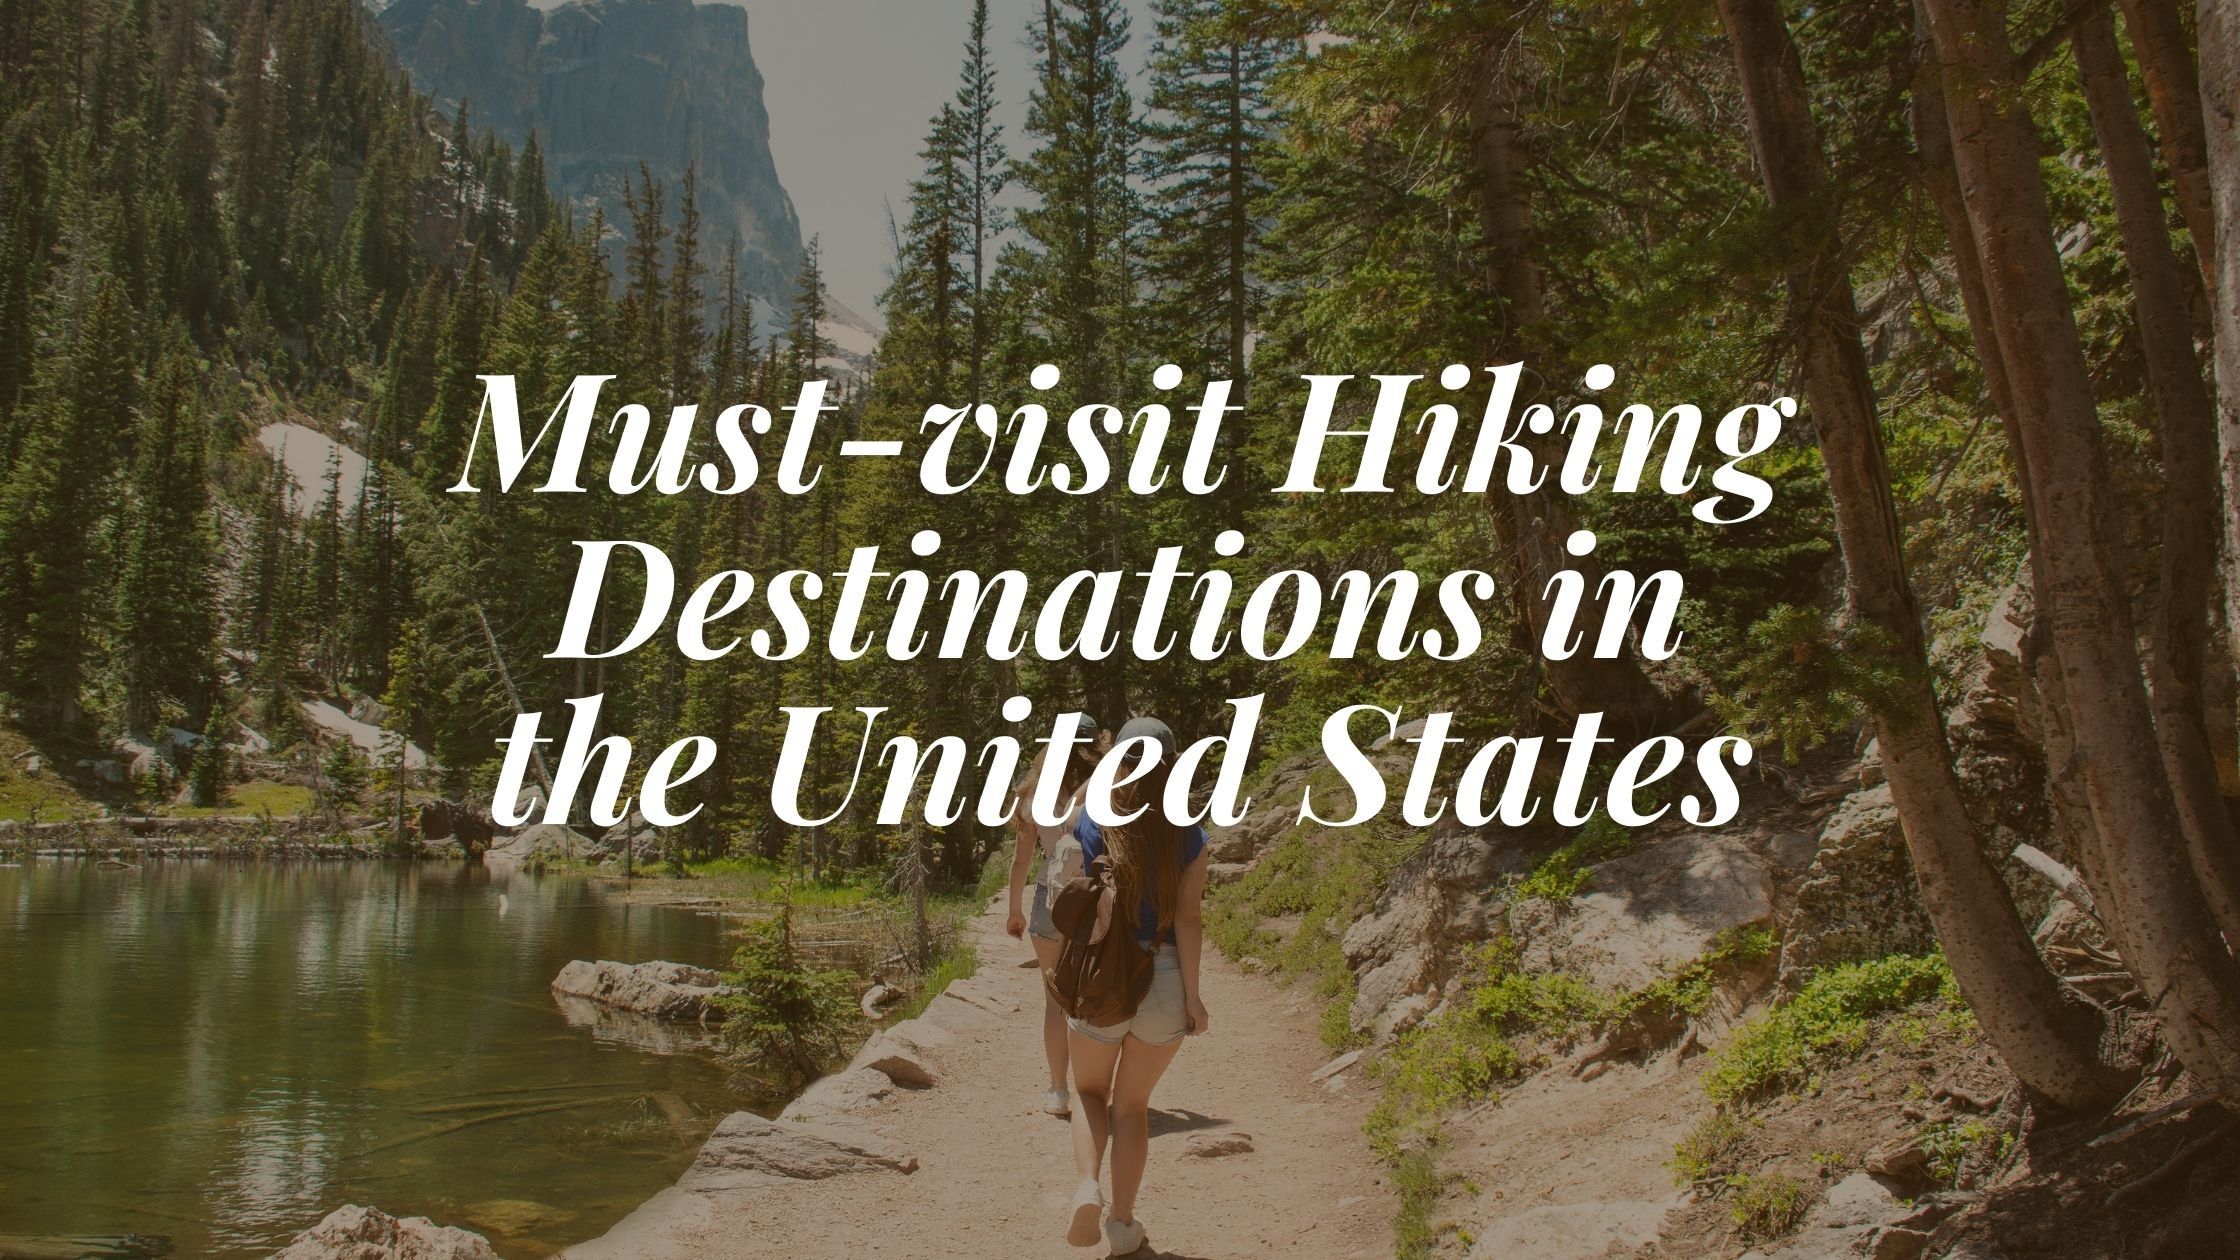 Must-visit Hiking Destinations in the United States